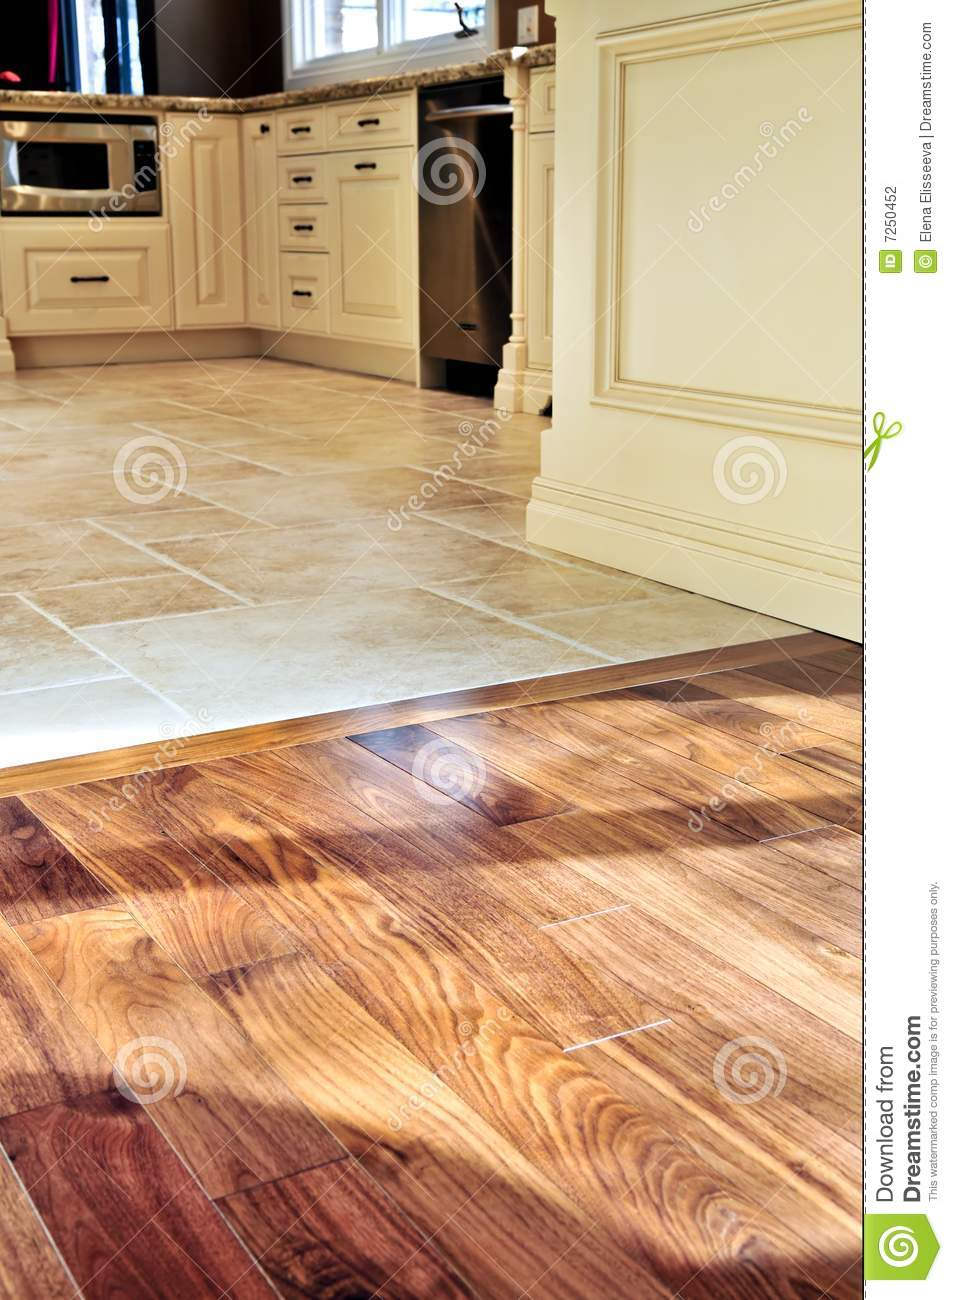 Hardwood and tile floor stock photo image of dining 7250452 for Flooring transition from kitchen to family room